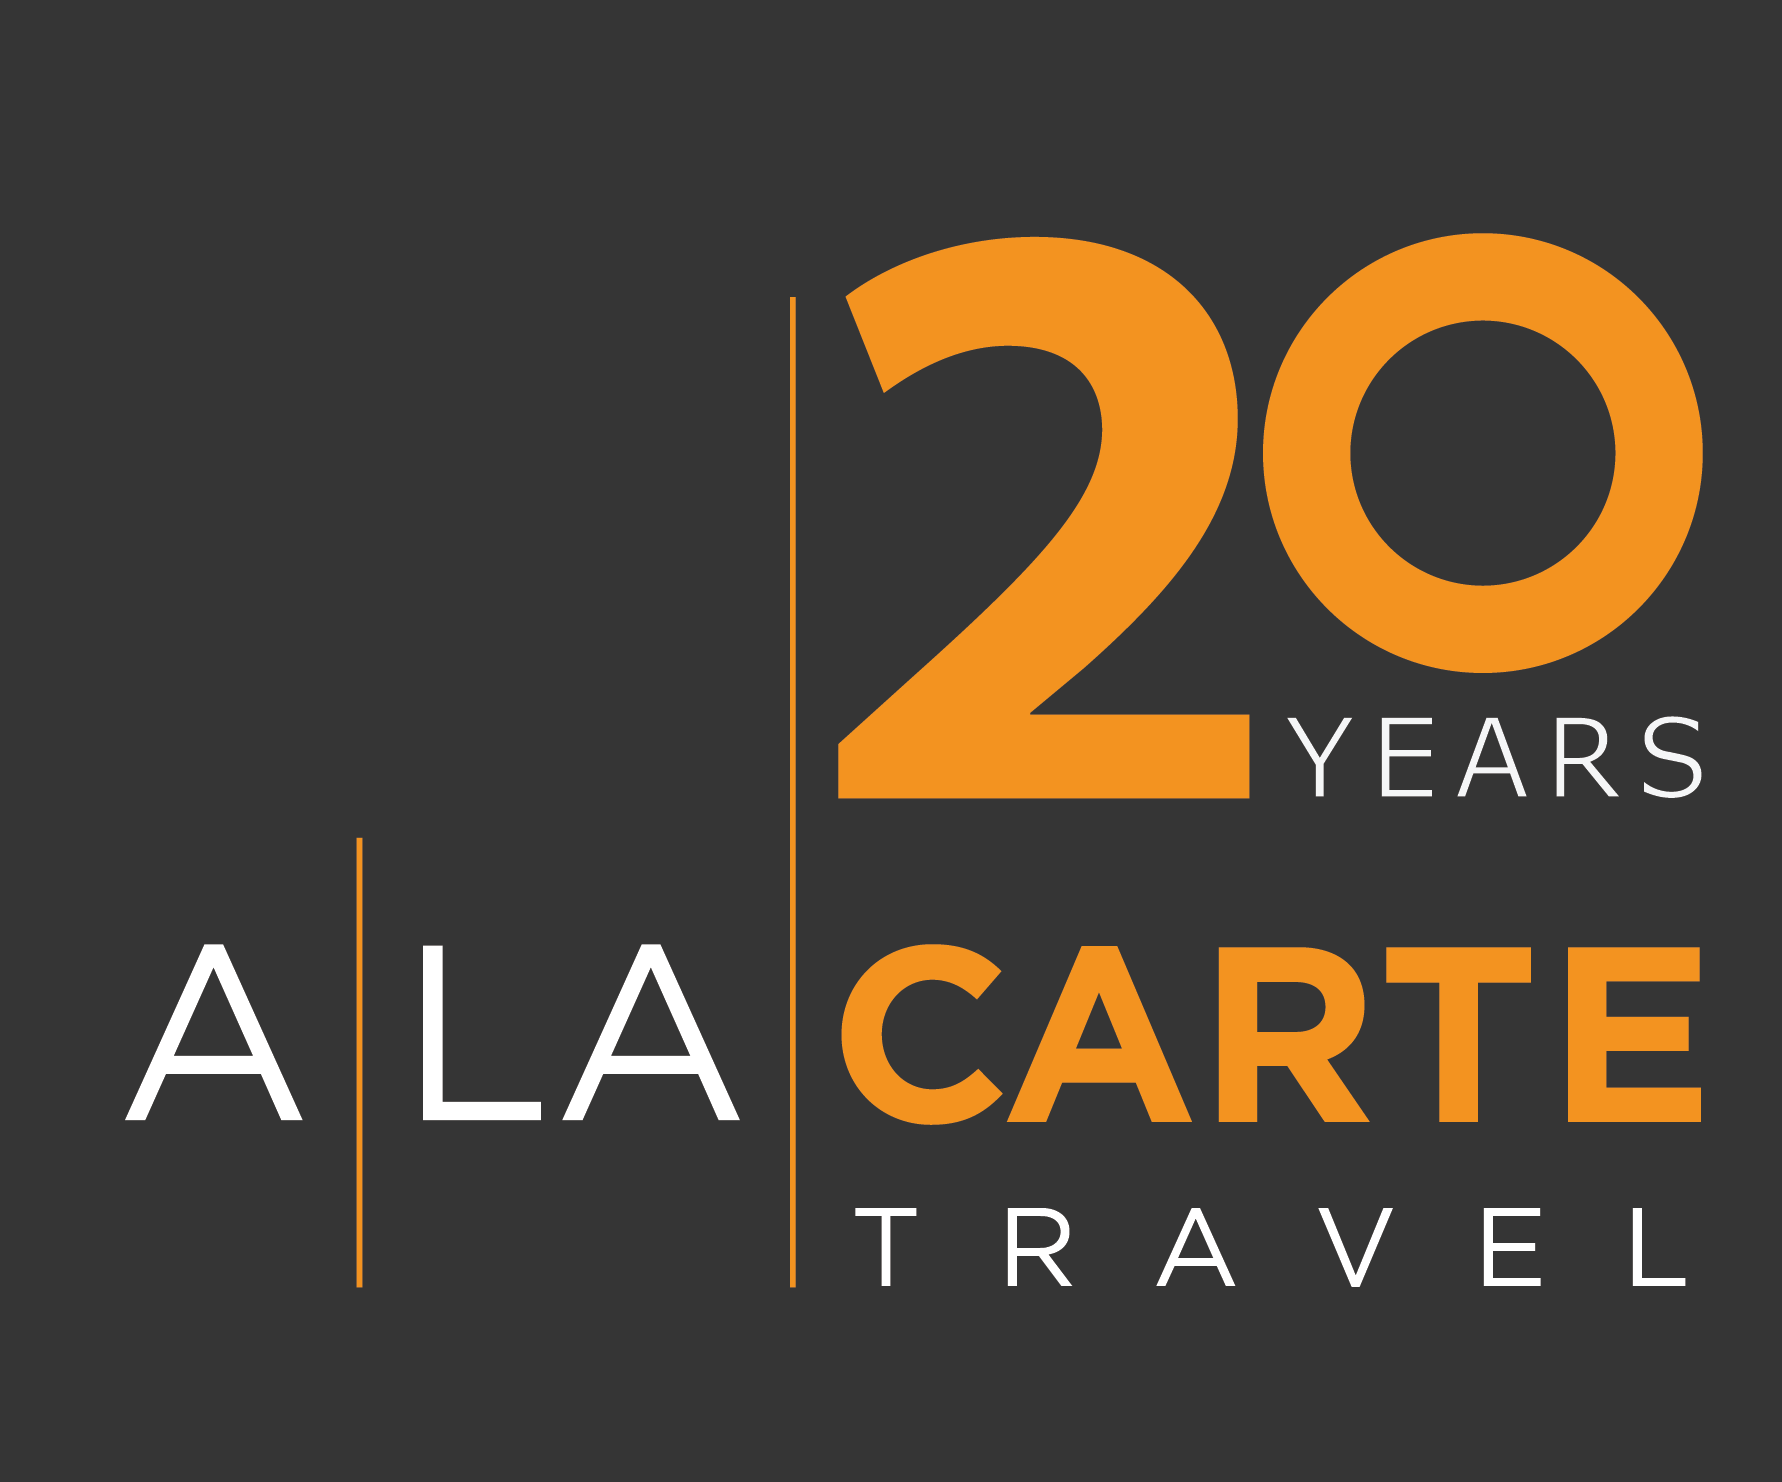 A-La-Carte-Travel